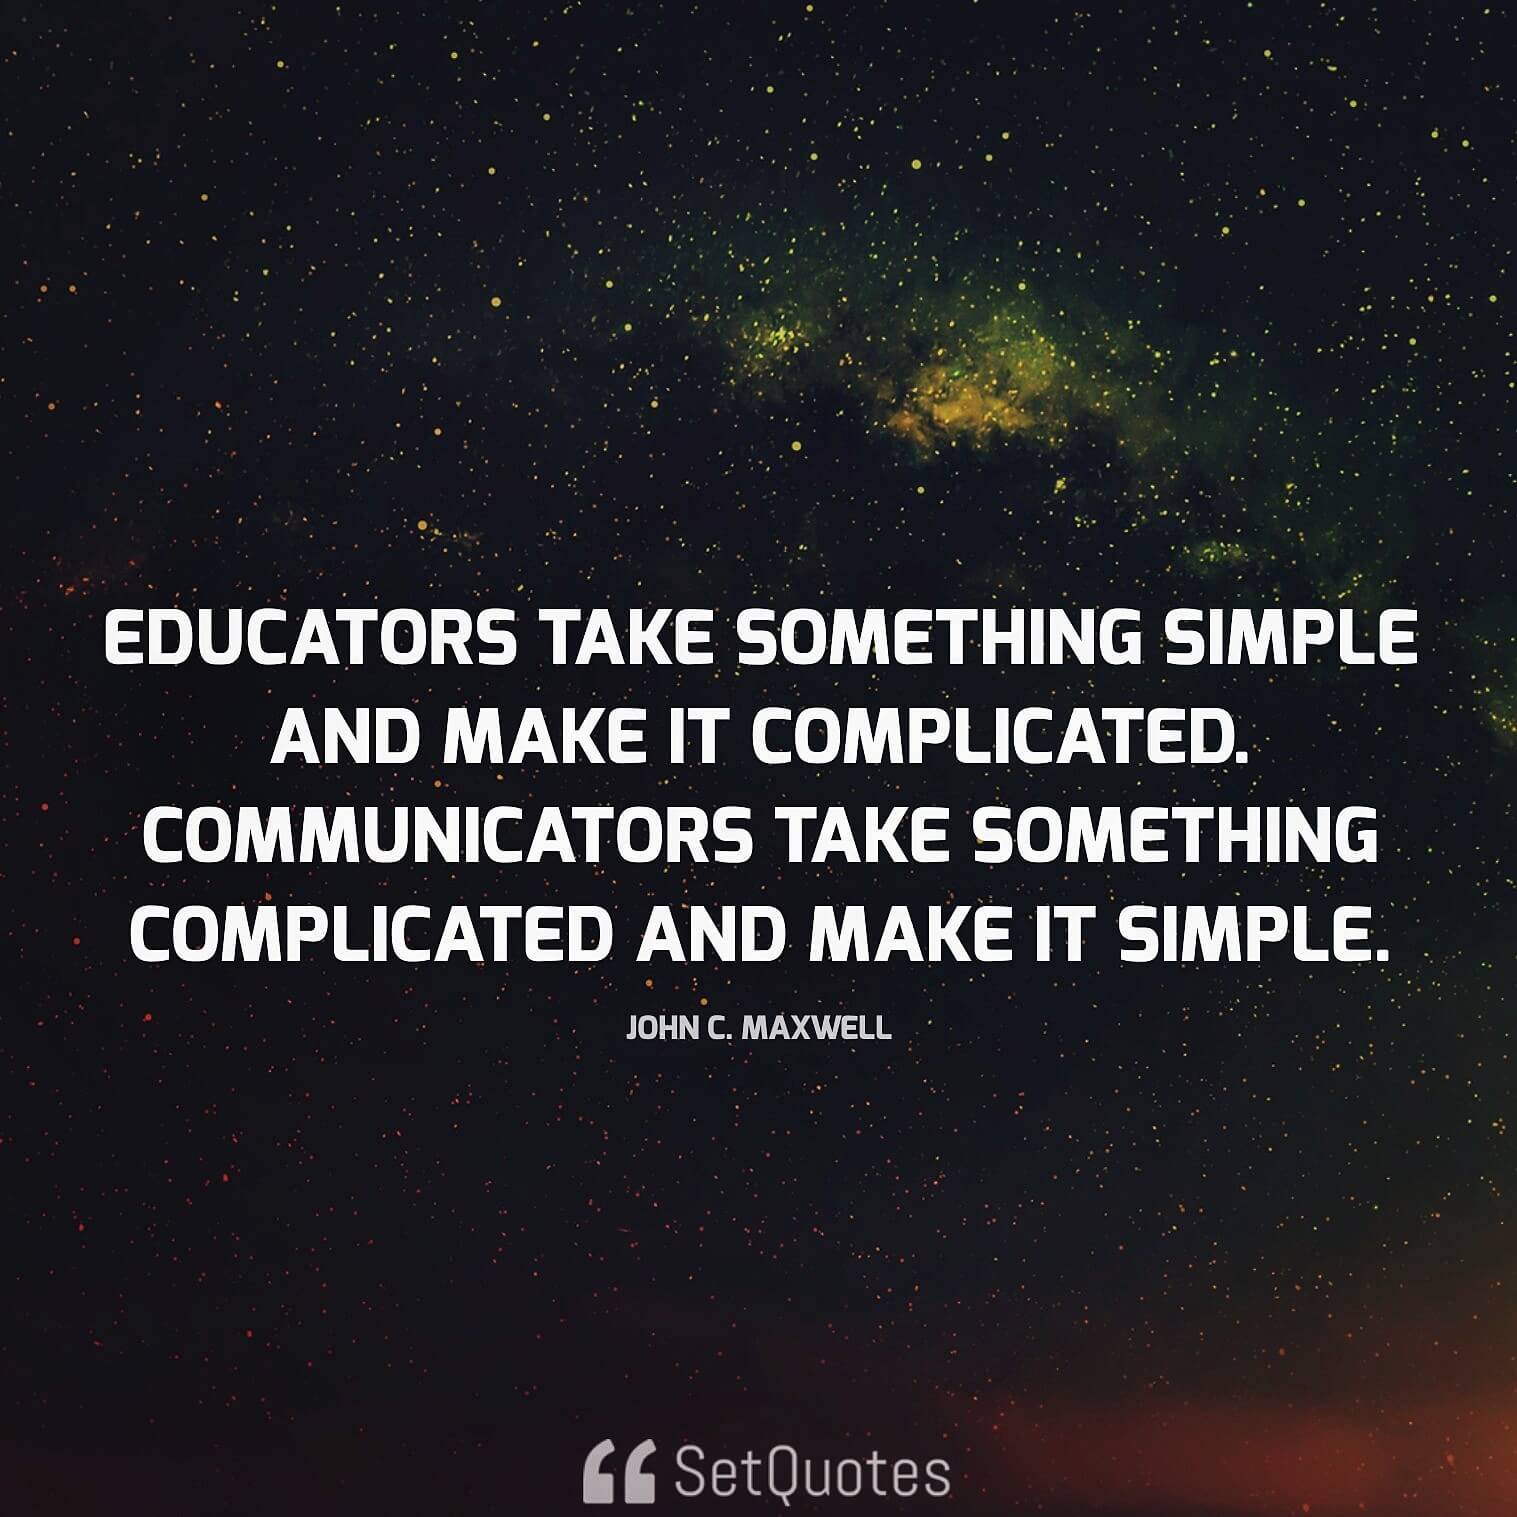 Educators take something simple and make it complicated. Communicators take something complicated and make it simple. - John C. Maxwell